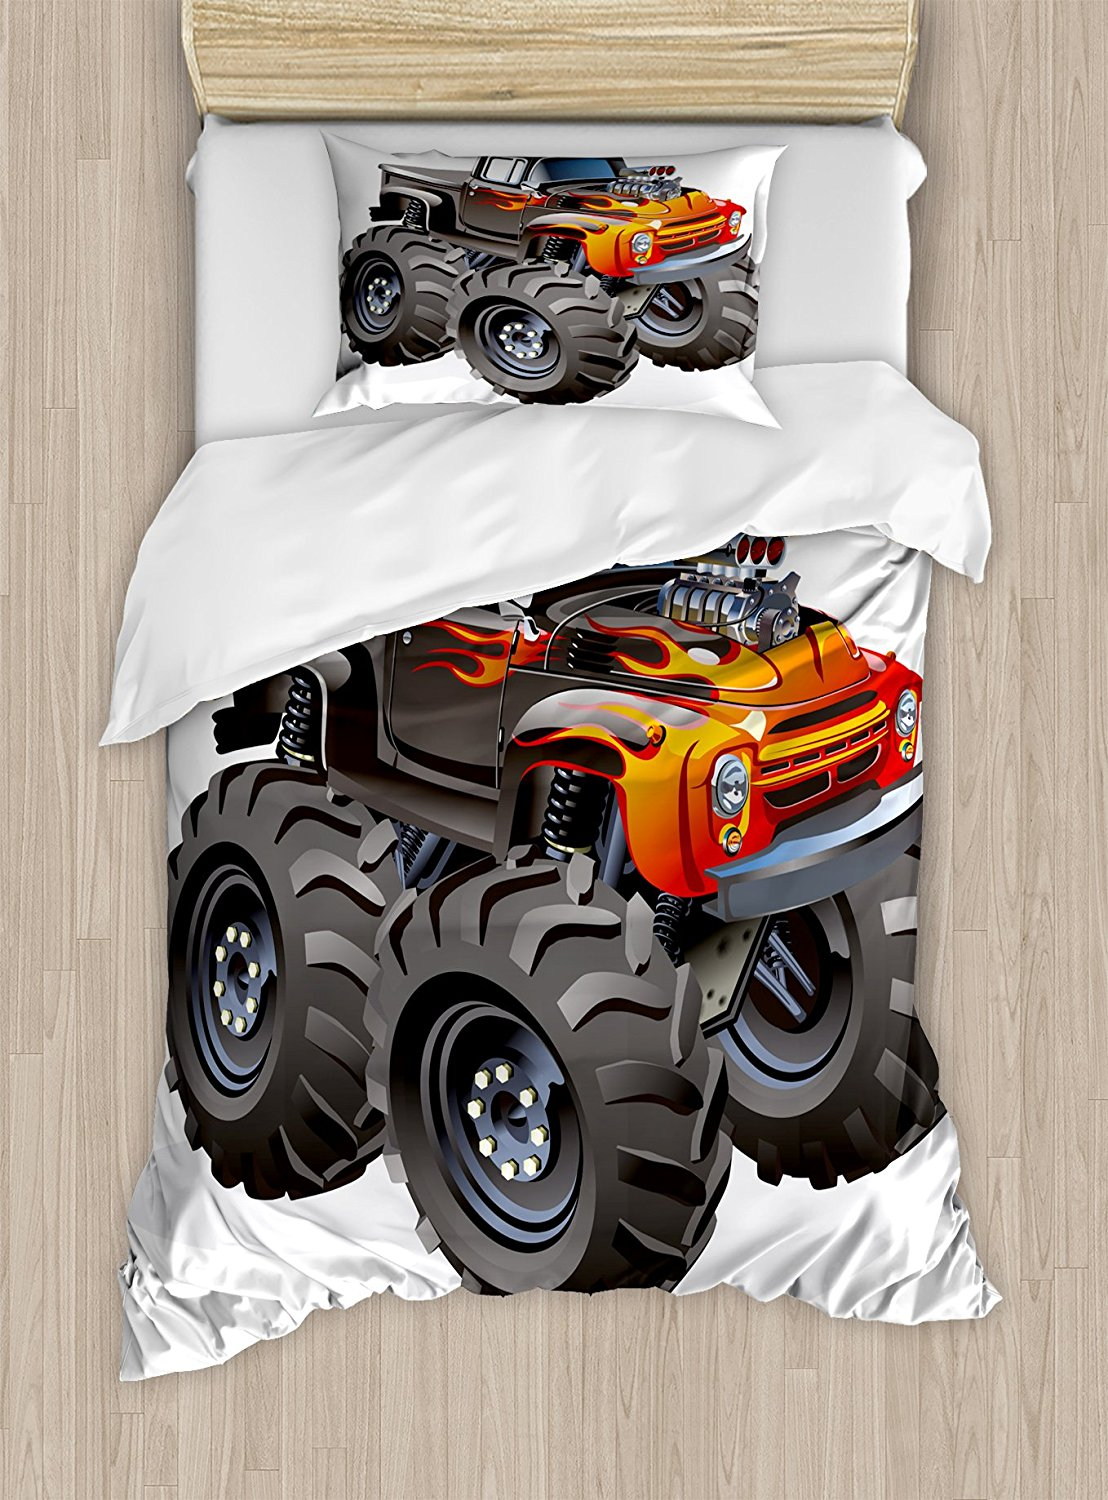 Boys Room Duvet Cover Set by Lunarable, Monster Truck in Flame Big Hobby Sports Exotic Automobile Style 4 Piece Bedding Set